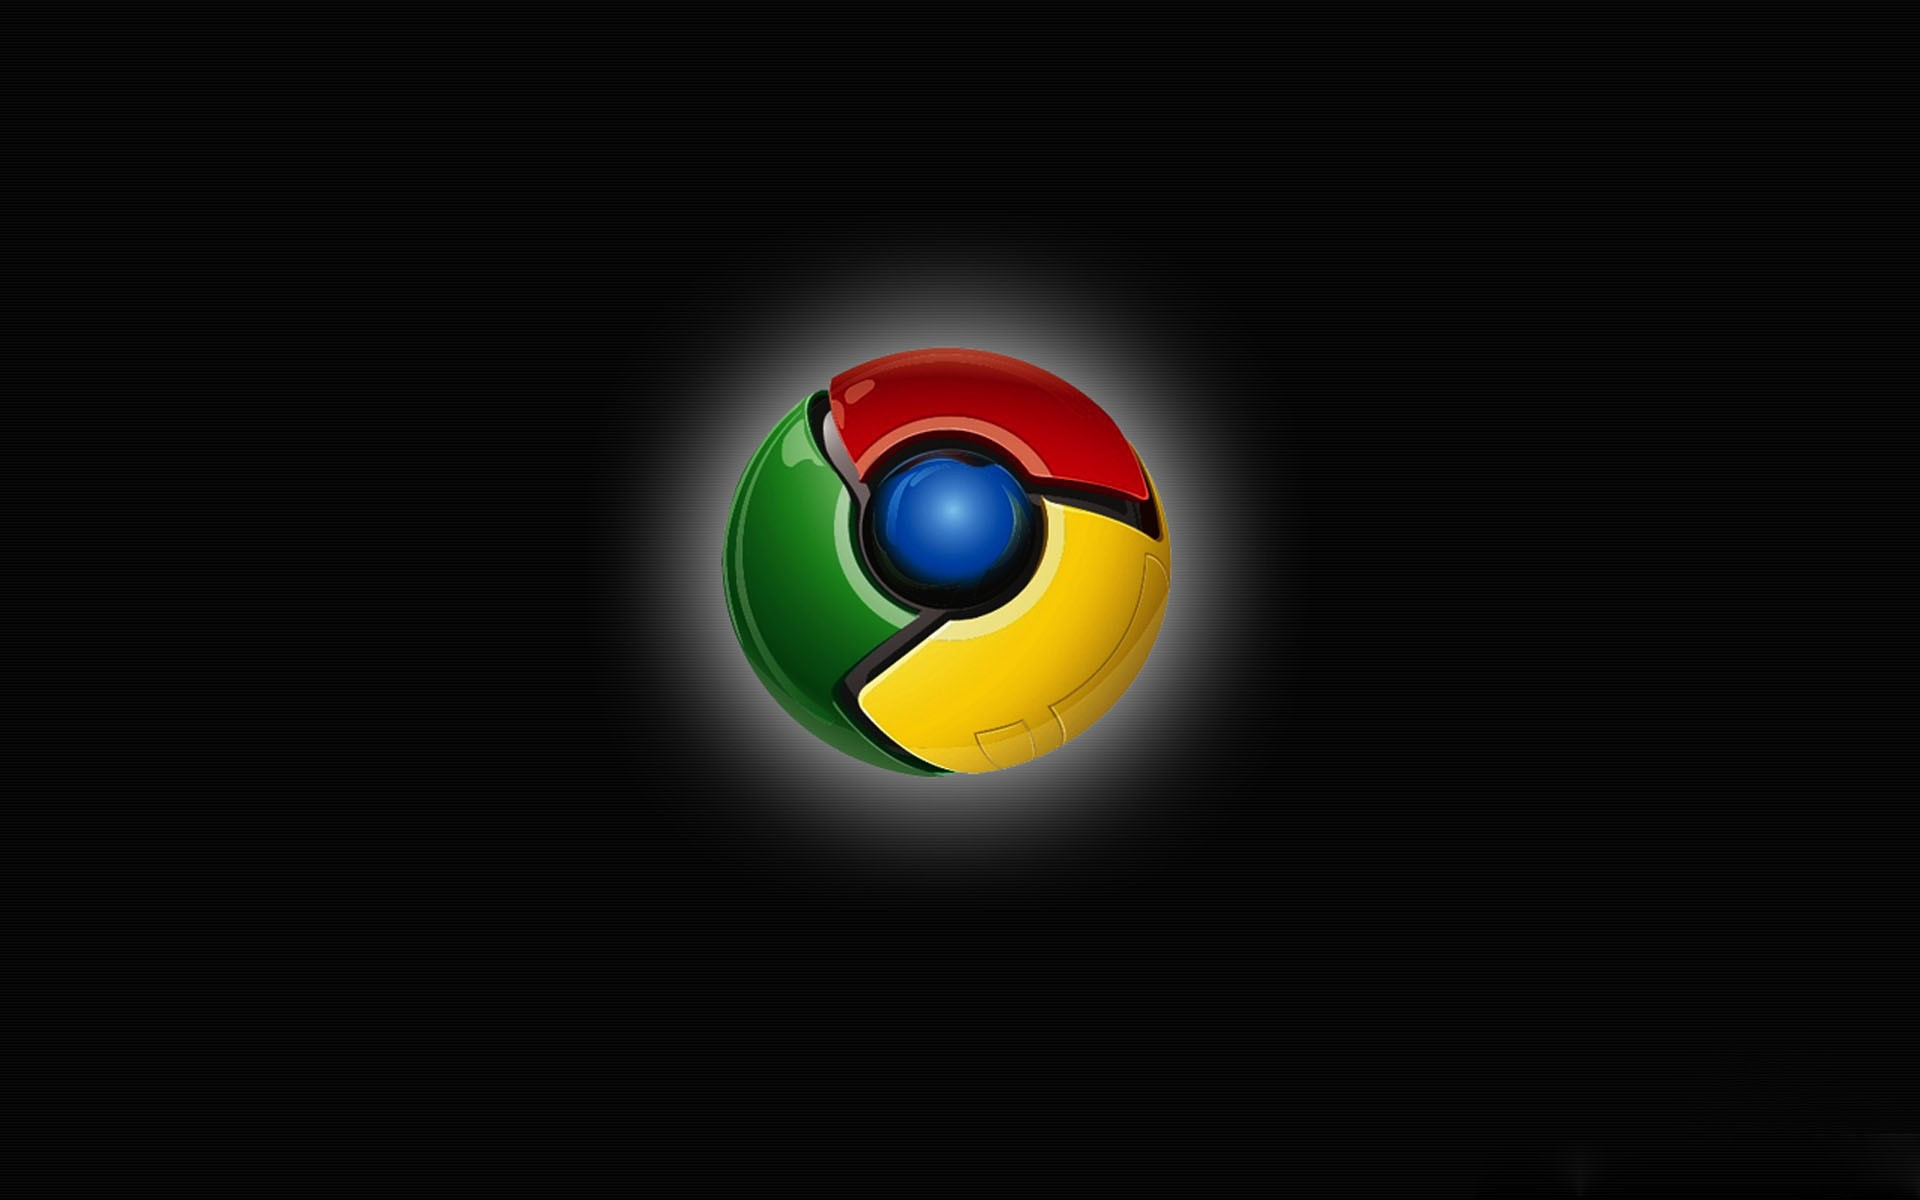 Chrome Background 183 ① Download Free Awesome Hd Wallpapers